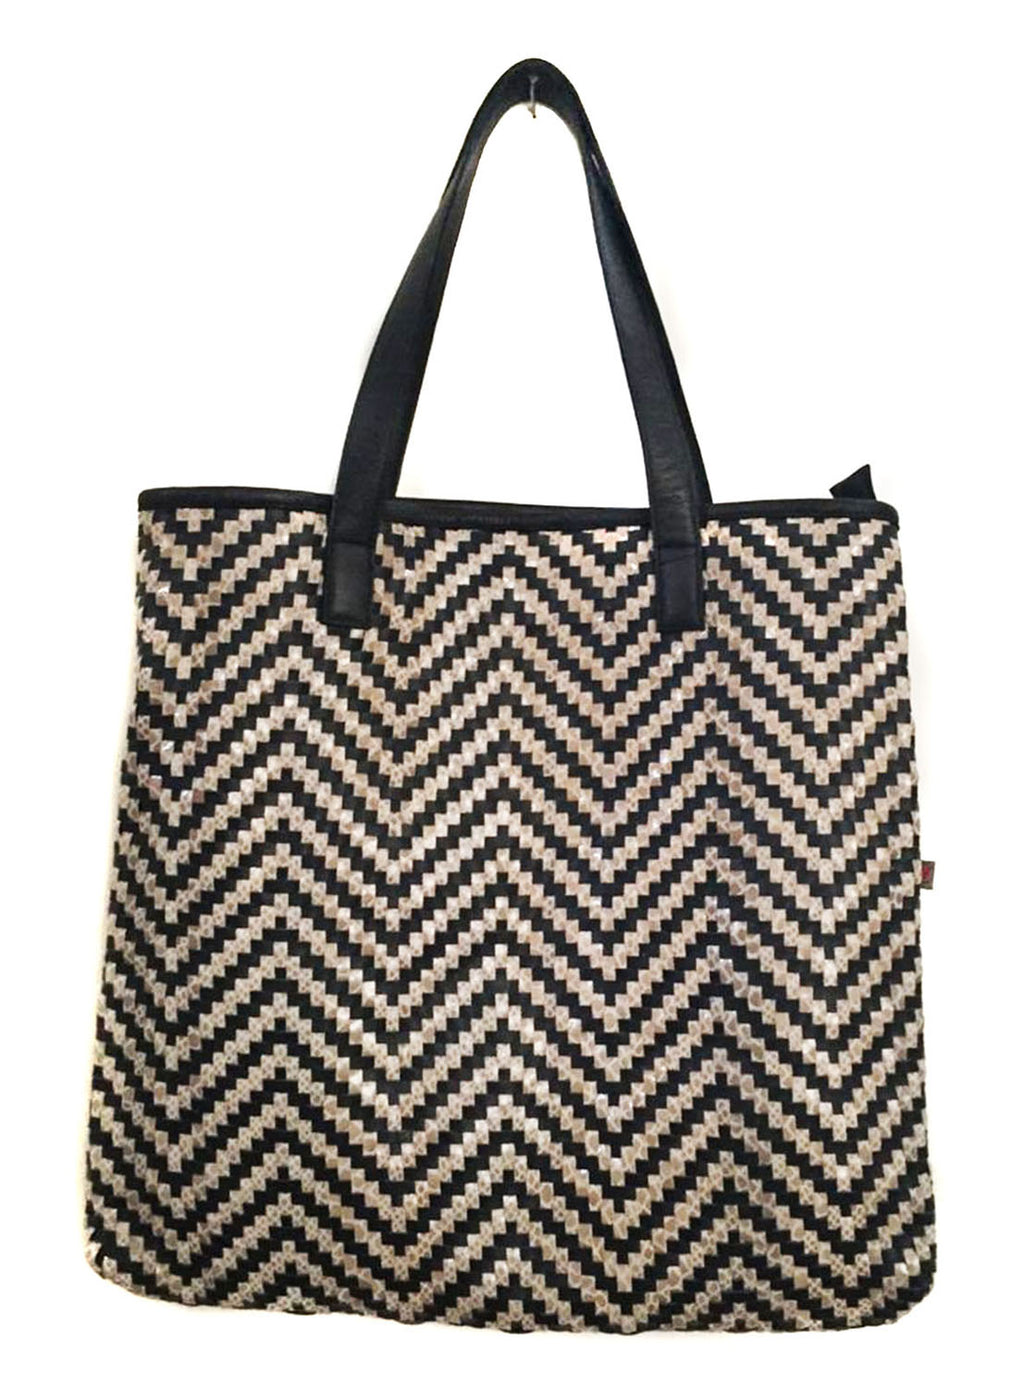 Byron Bay Woman Leather Woven Metallic Tote Bag